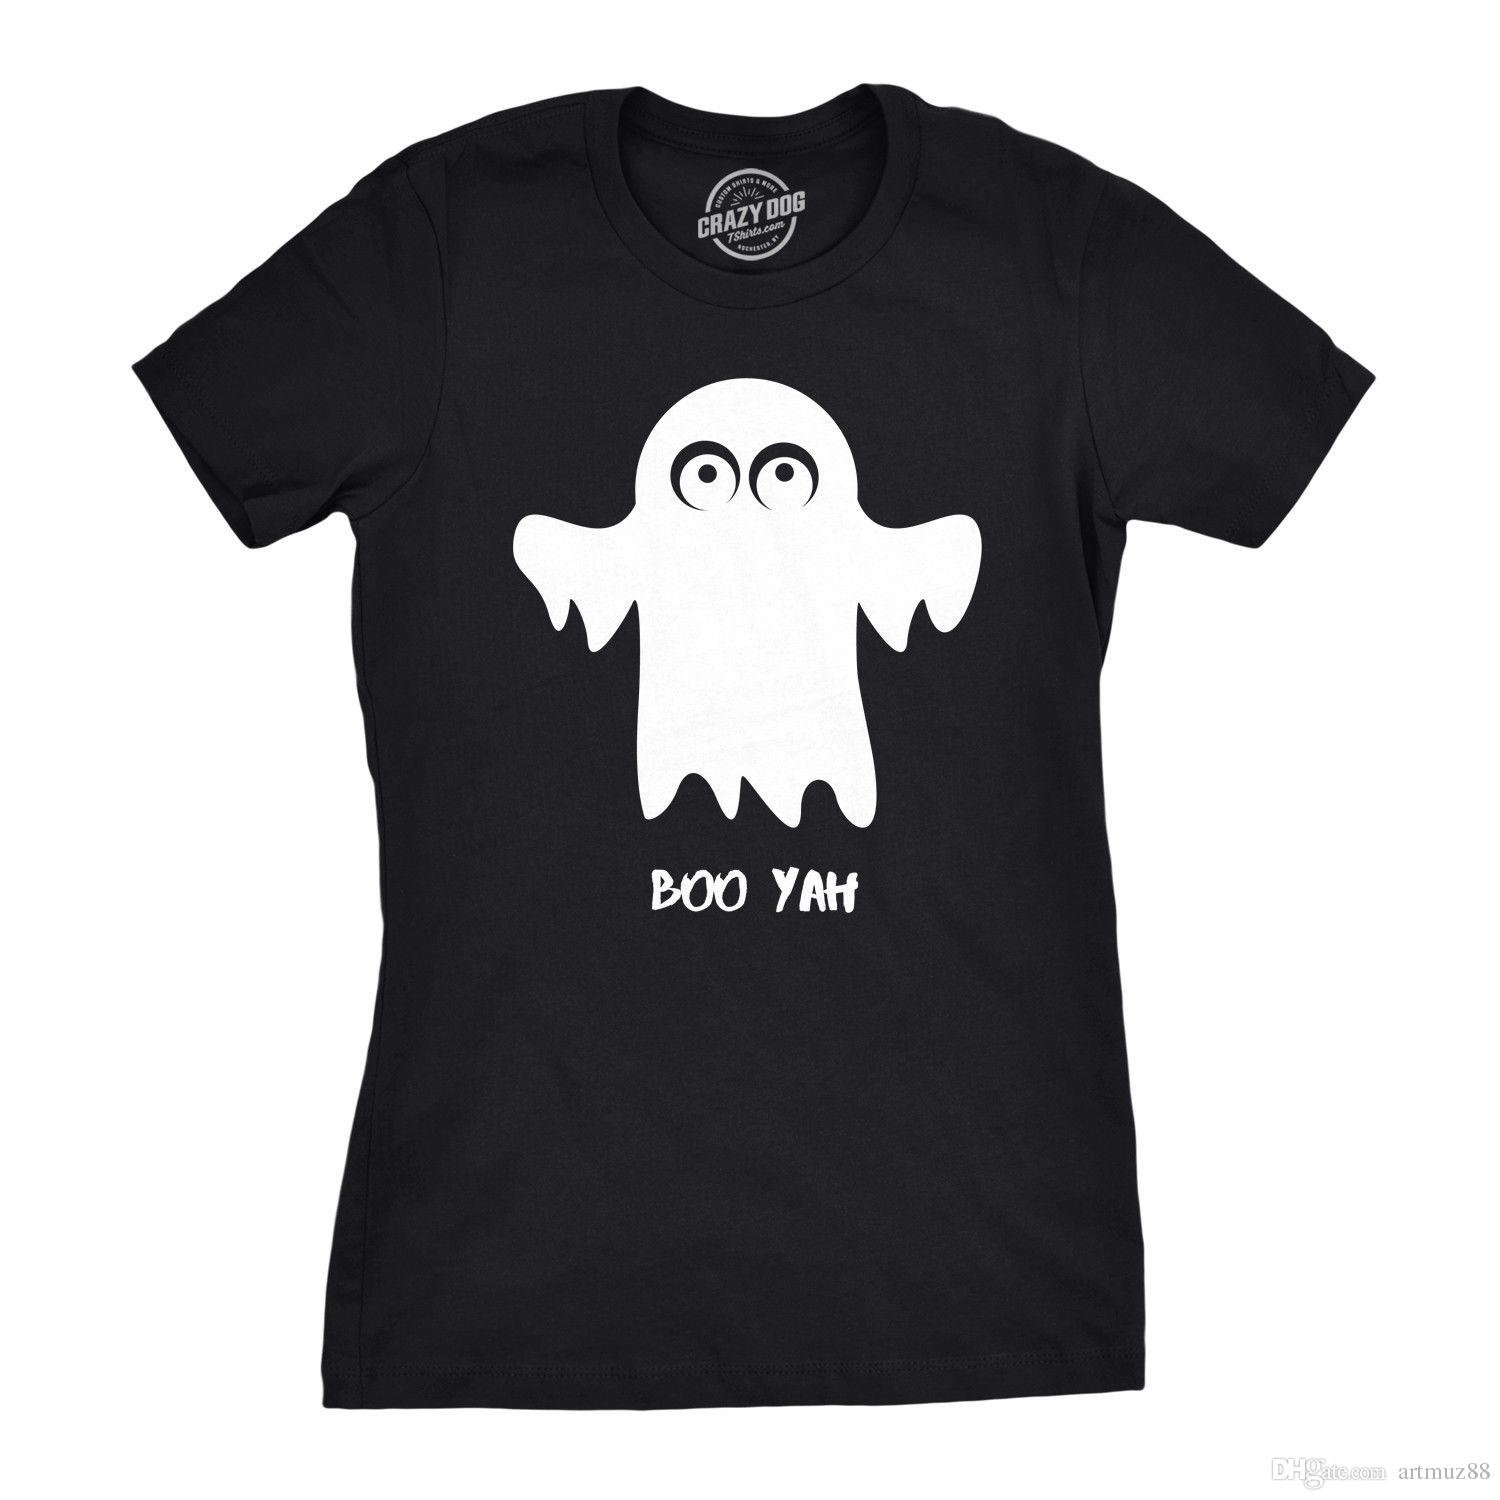 c448dc5d Womens Boo Yah Funny Spooky Cute Halloween Fall Ghost T Shirt Funky T Shirt  Designs T Shirt Awesome From Artmuz88, $10.76| DHgate.Com